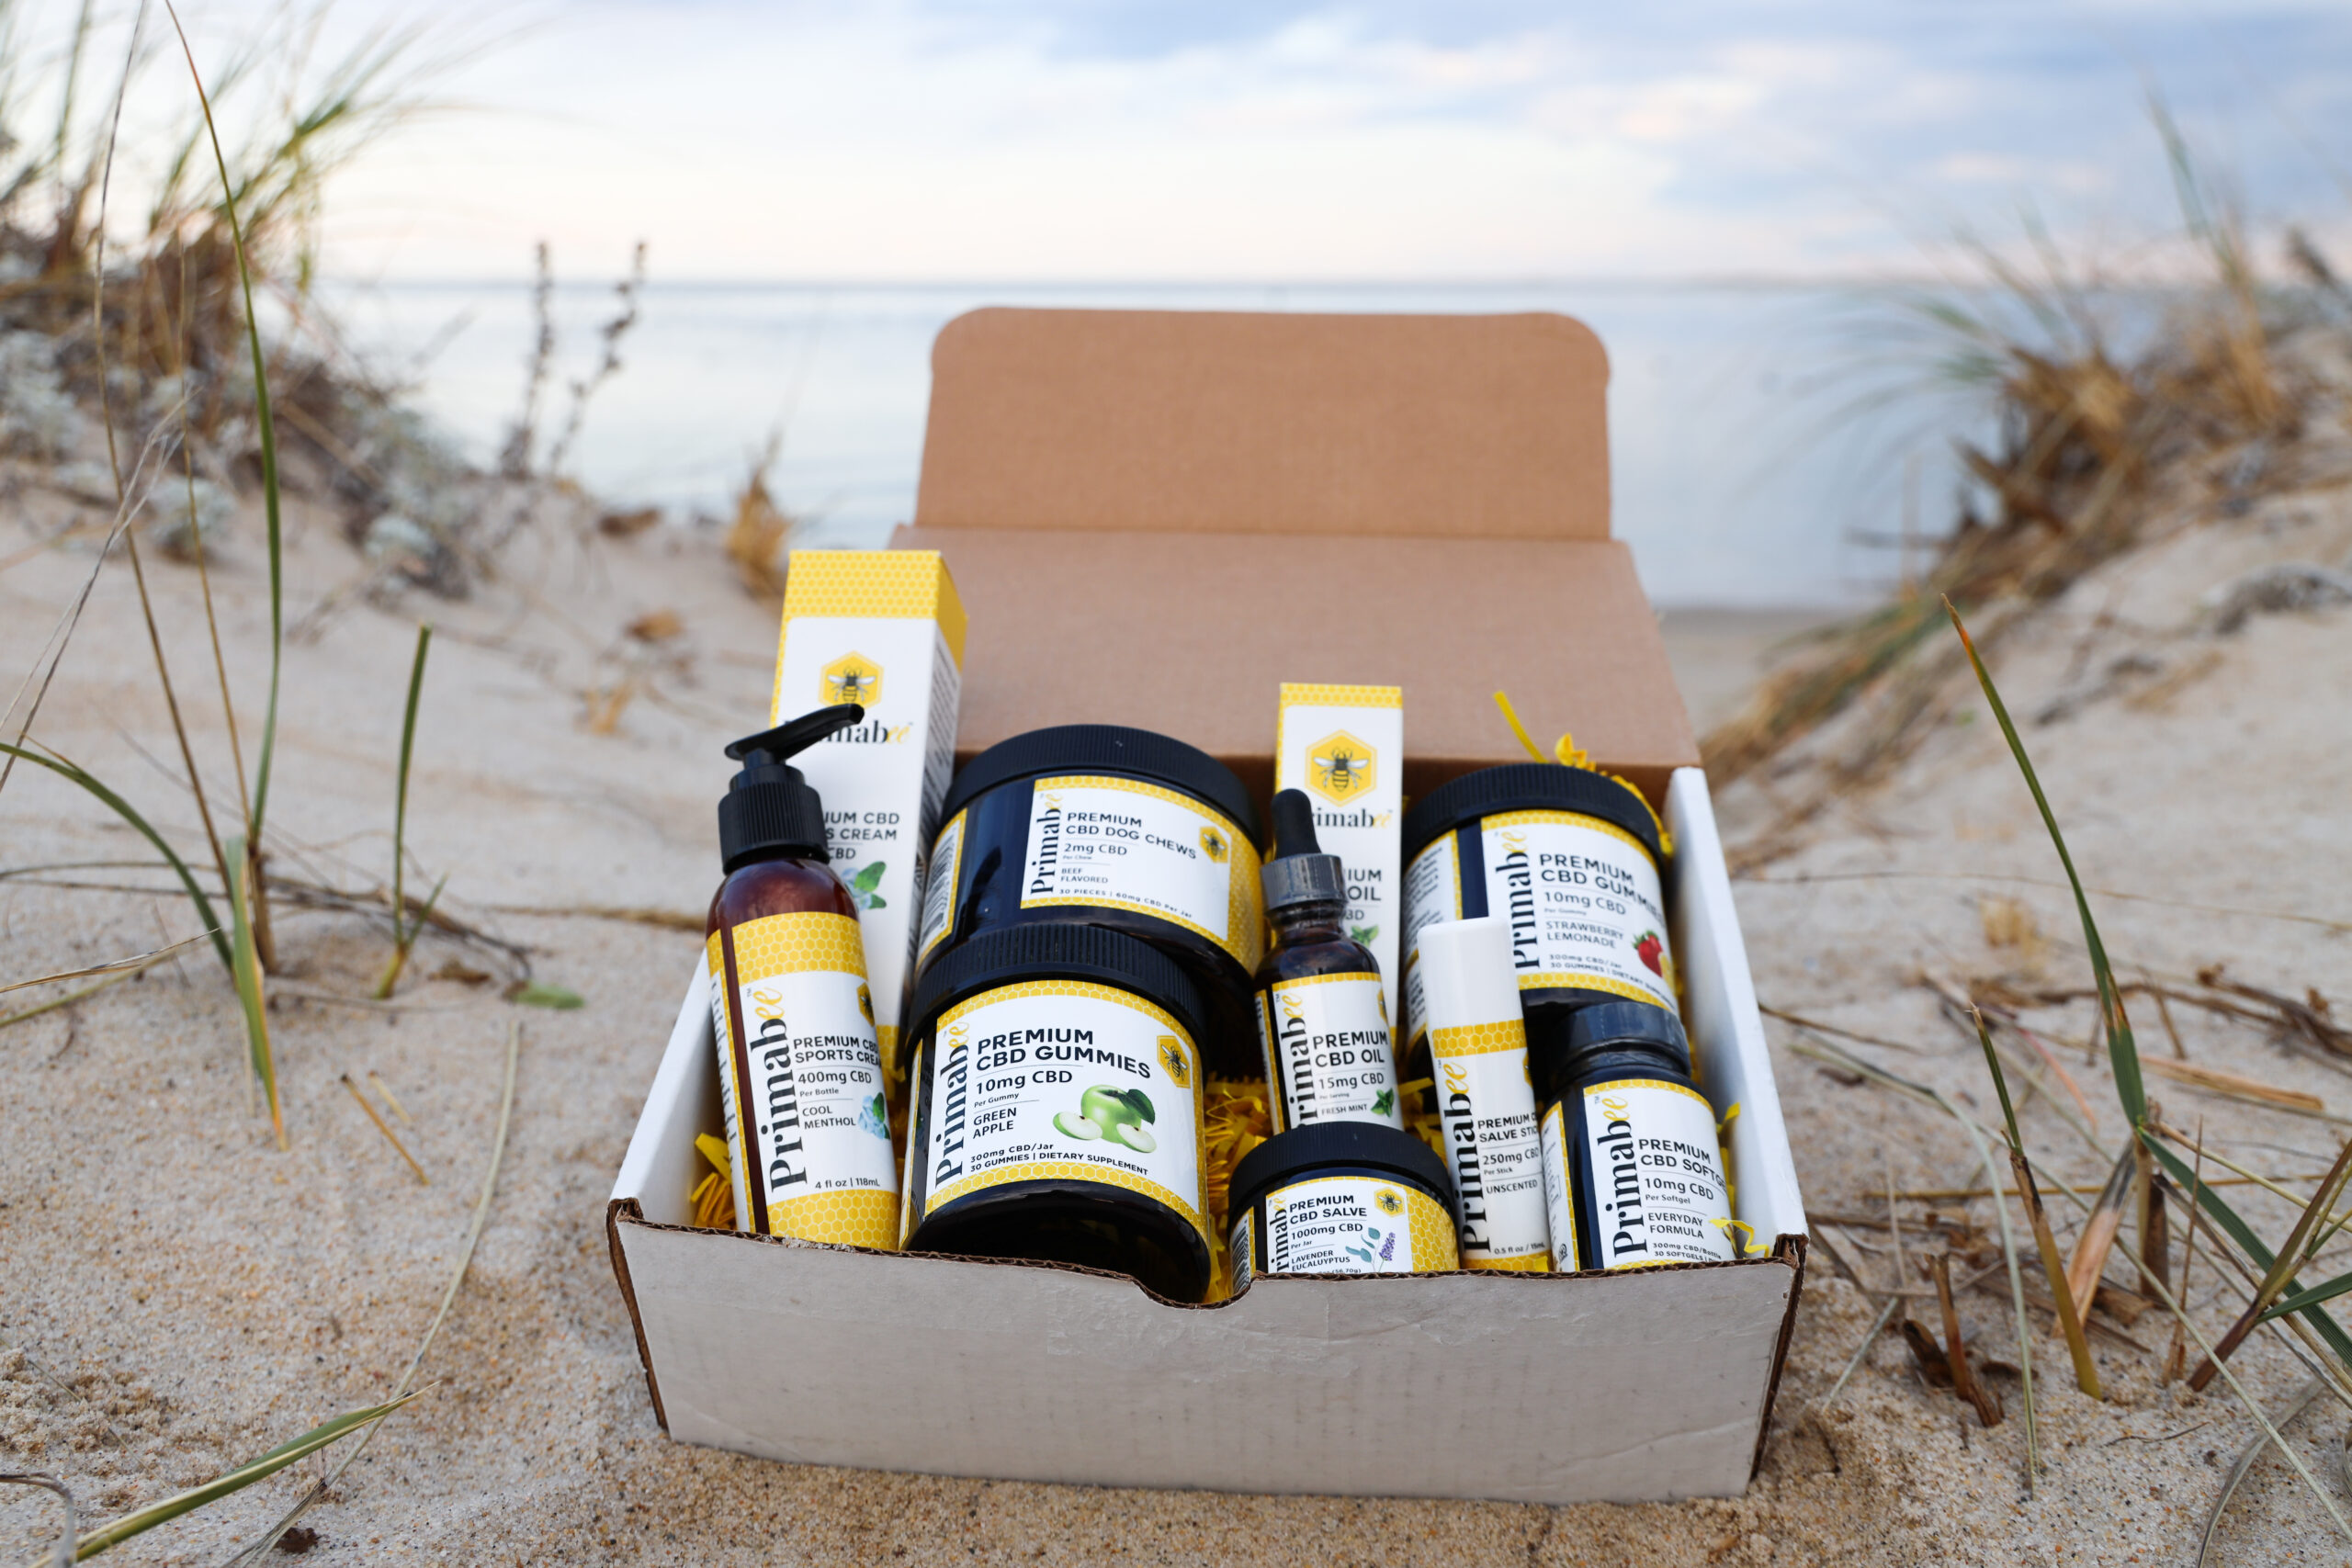 Primabee CBD Answers the Call for Ultra-Premium, Potent, and Ethical CBD Products